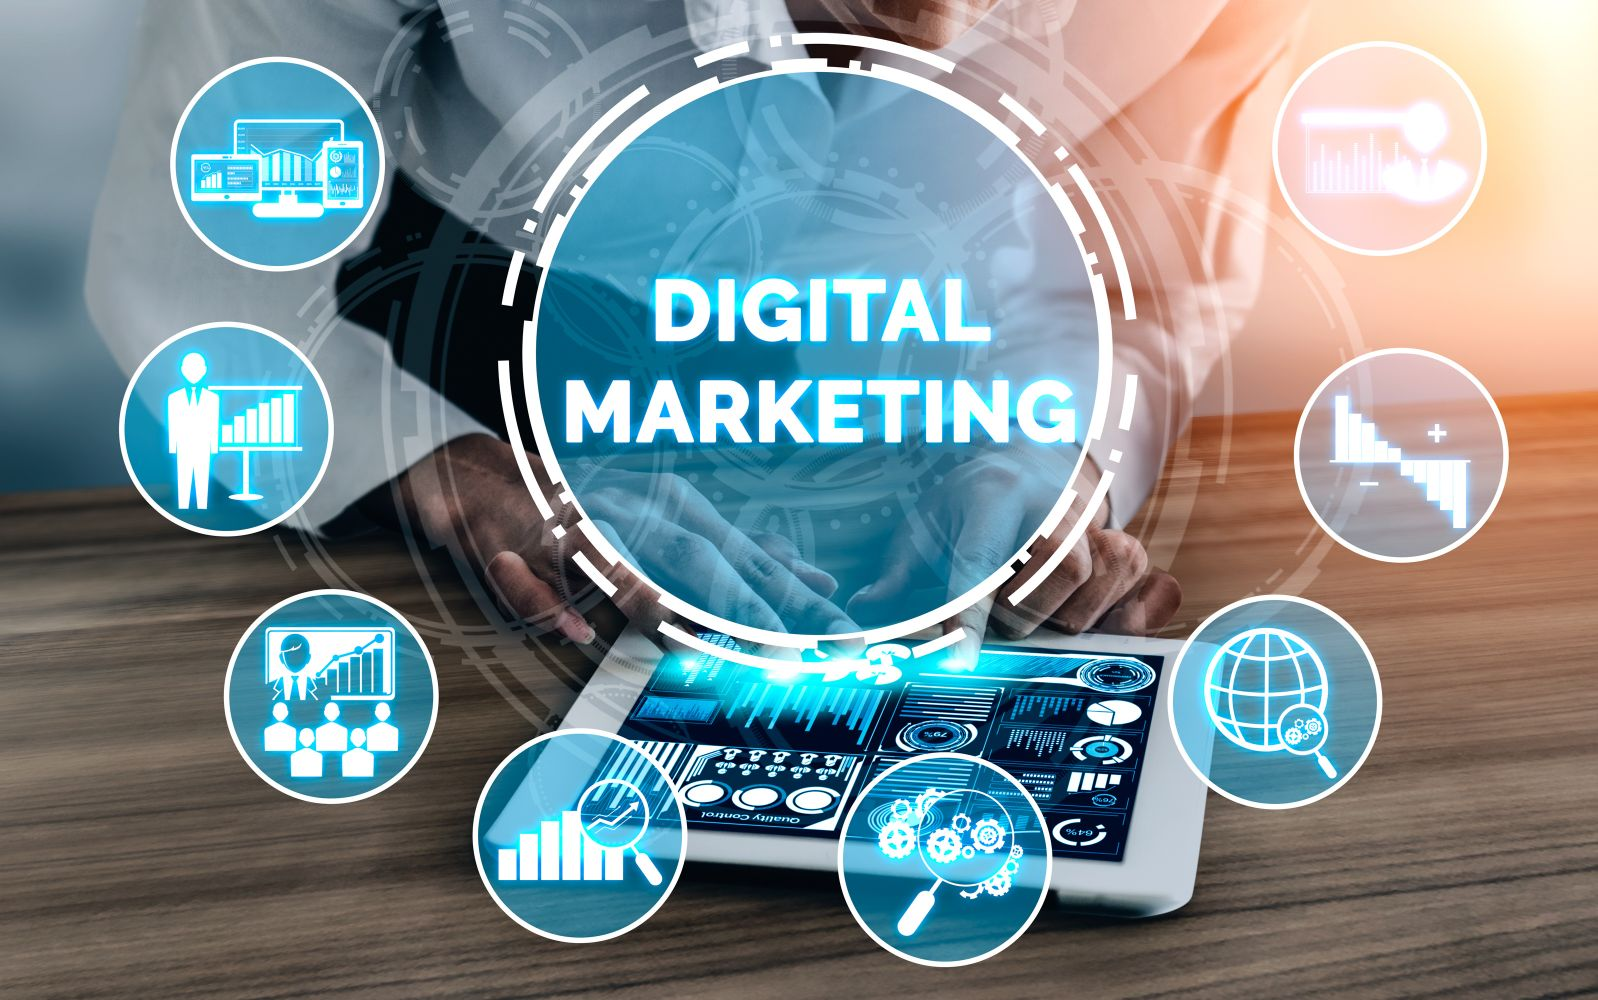 Digital Marketing Bgrafio